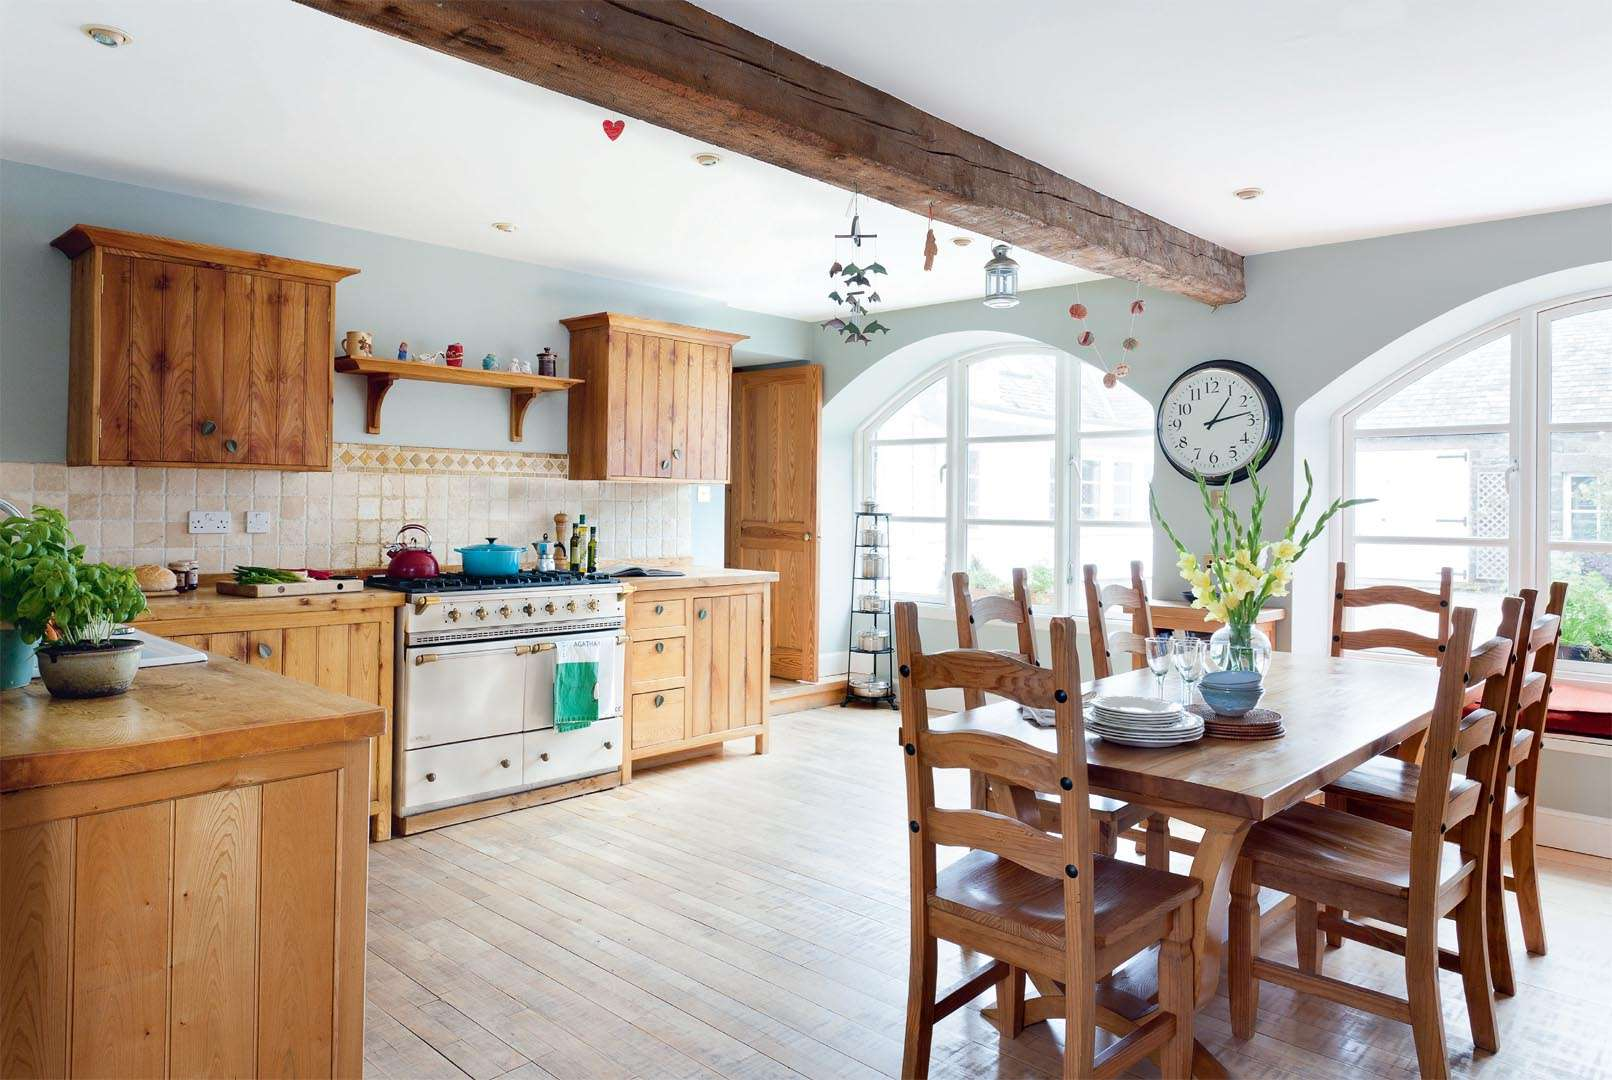 converting a run down farm building into a family kitchen real homes - Family Kitchen